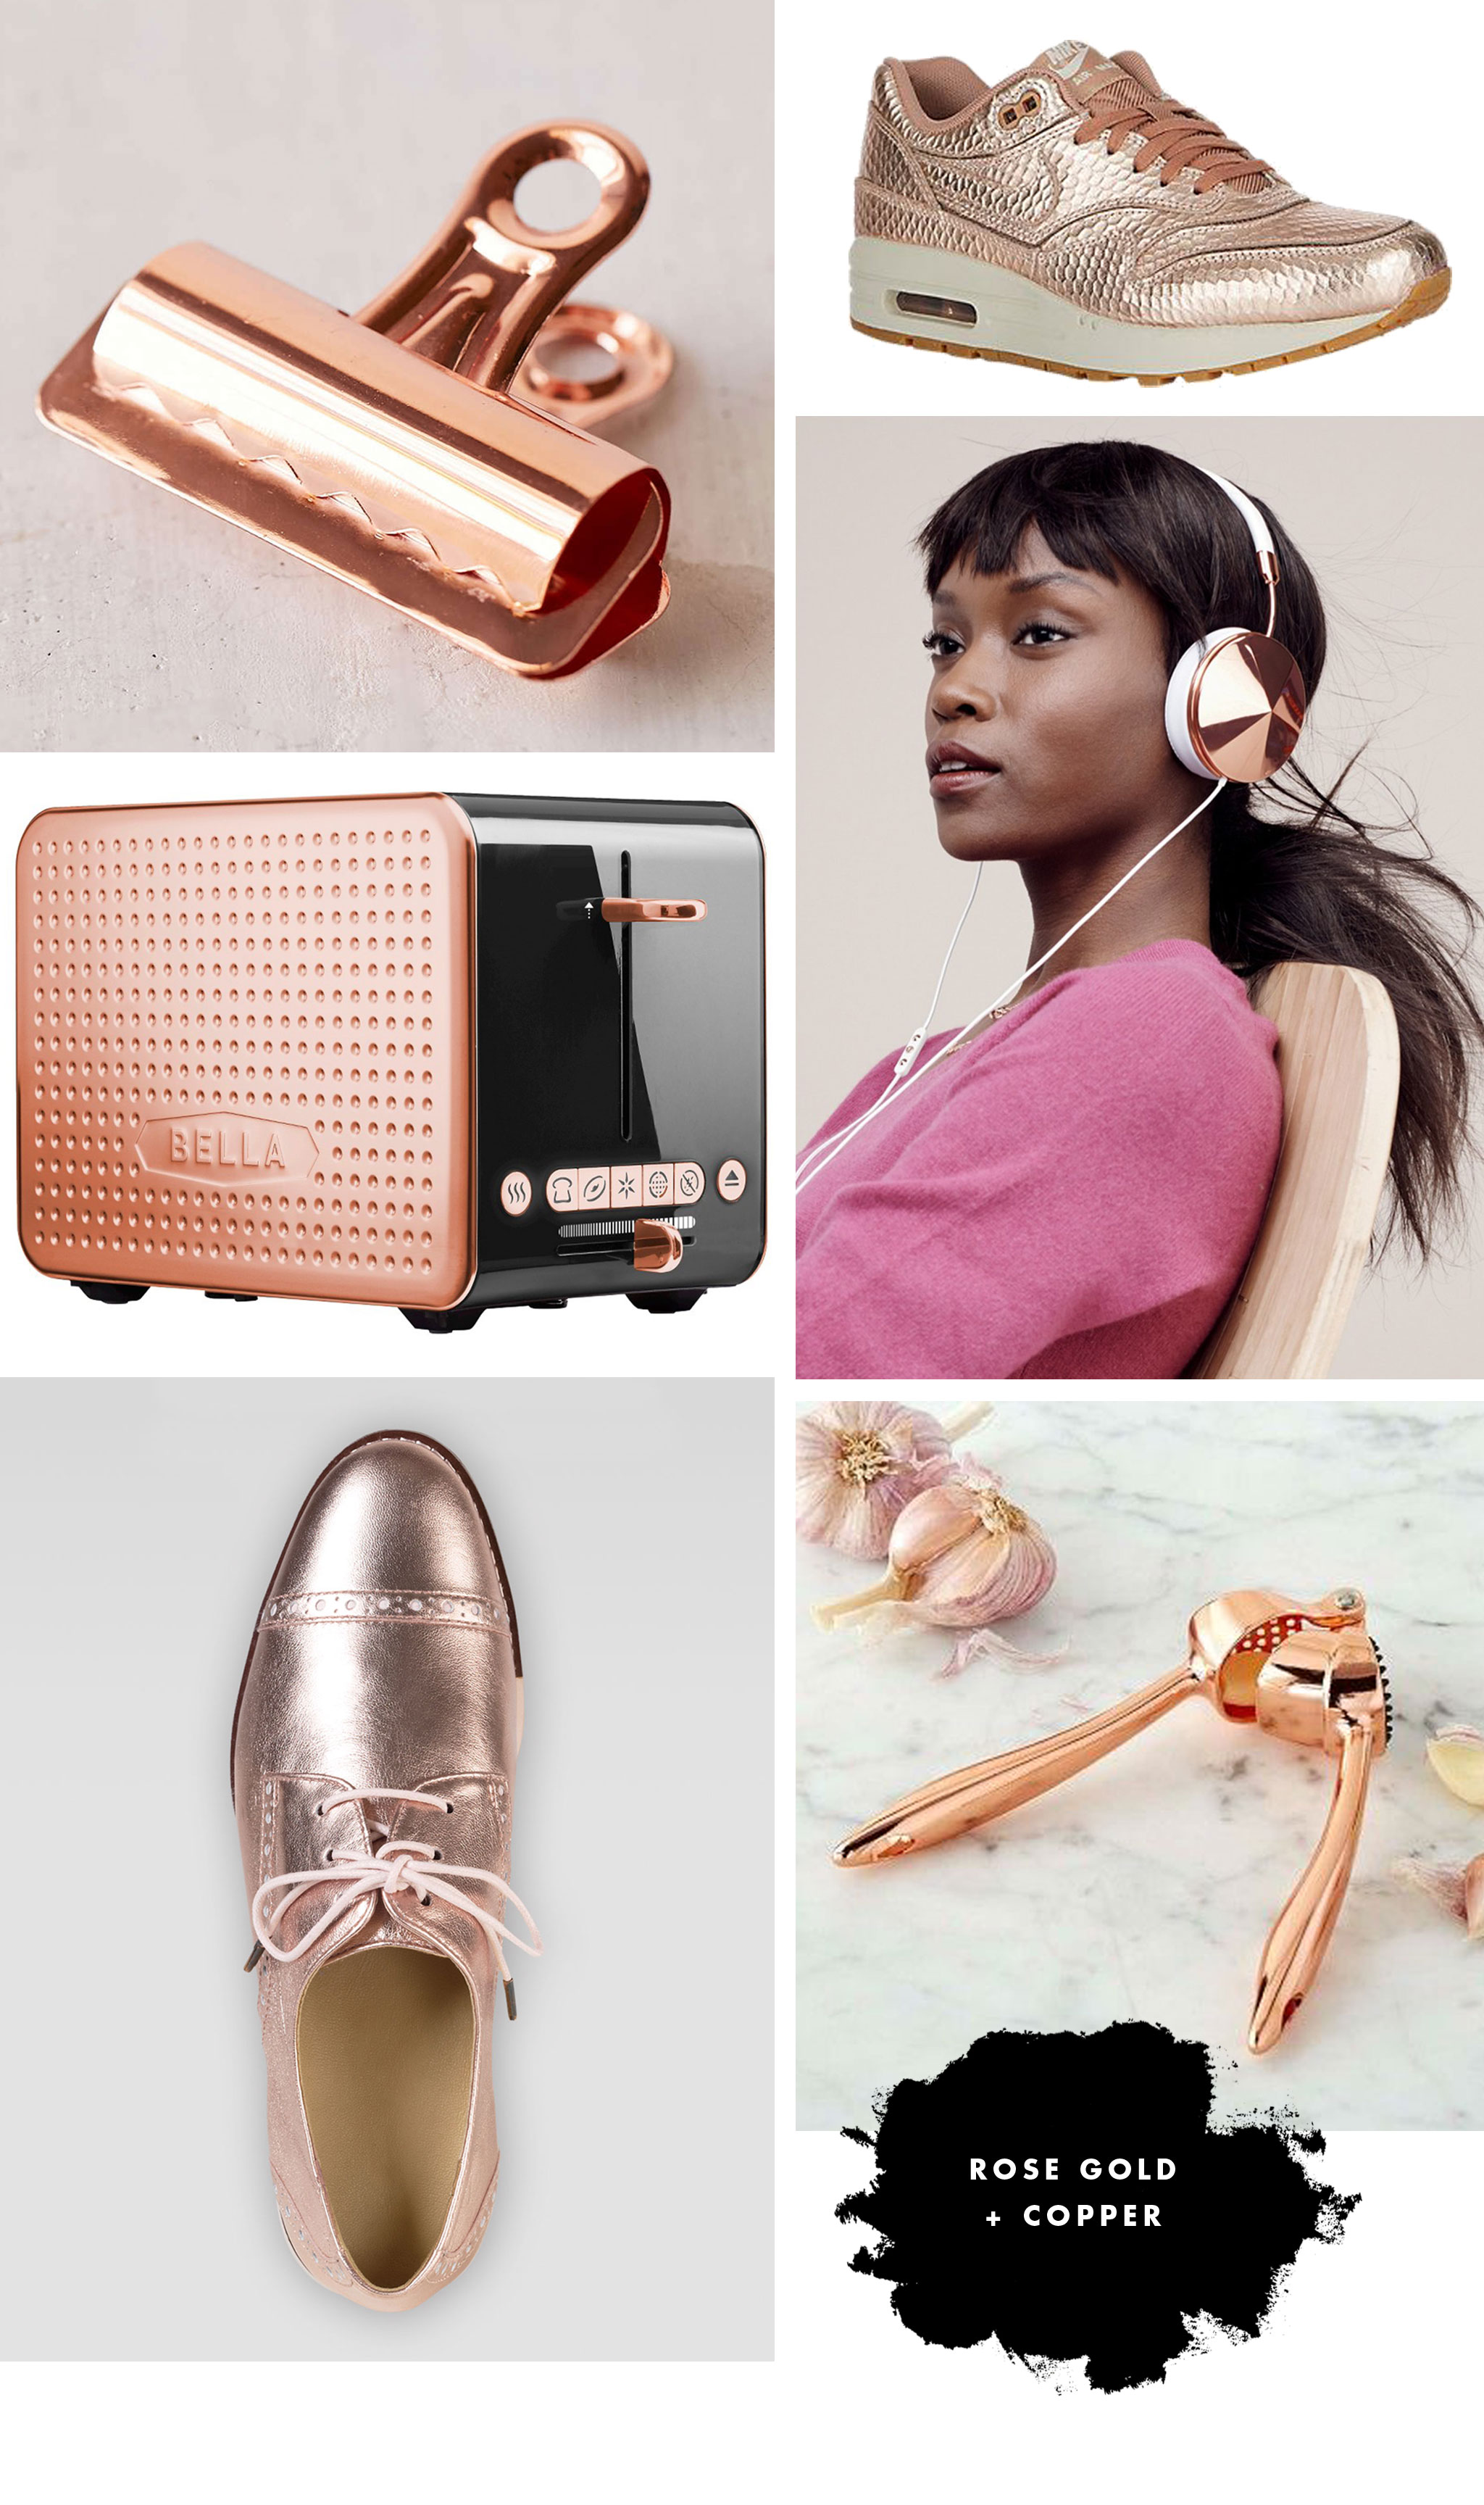 GG-BLOG-POSTS-ROSE-GOLD-COPPER-1